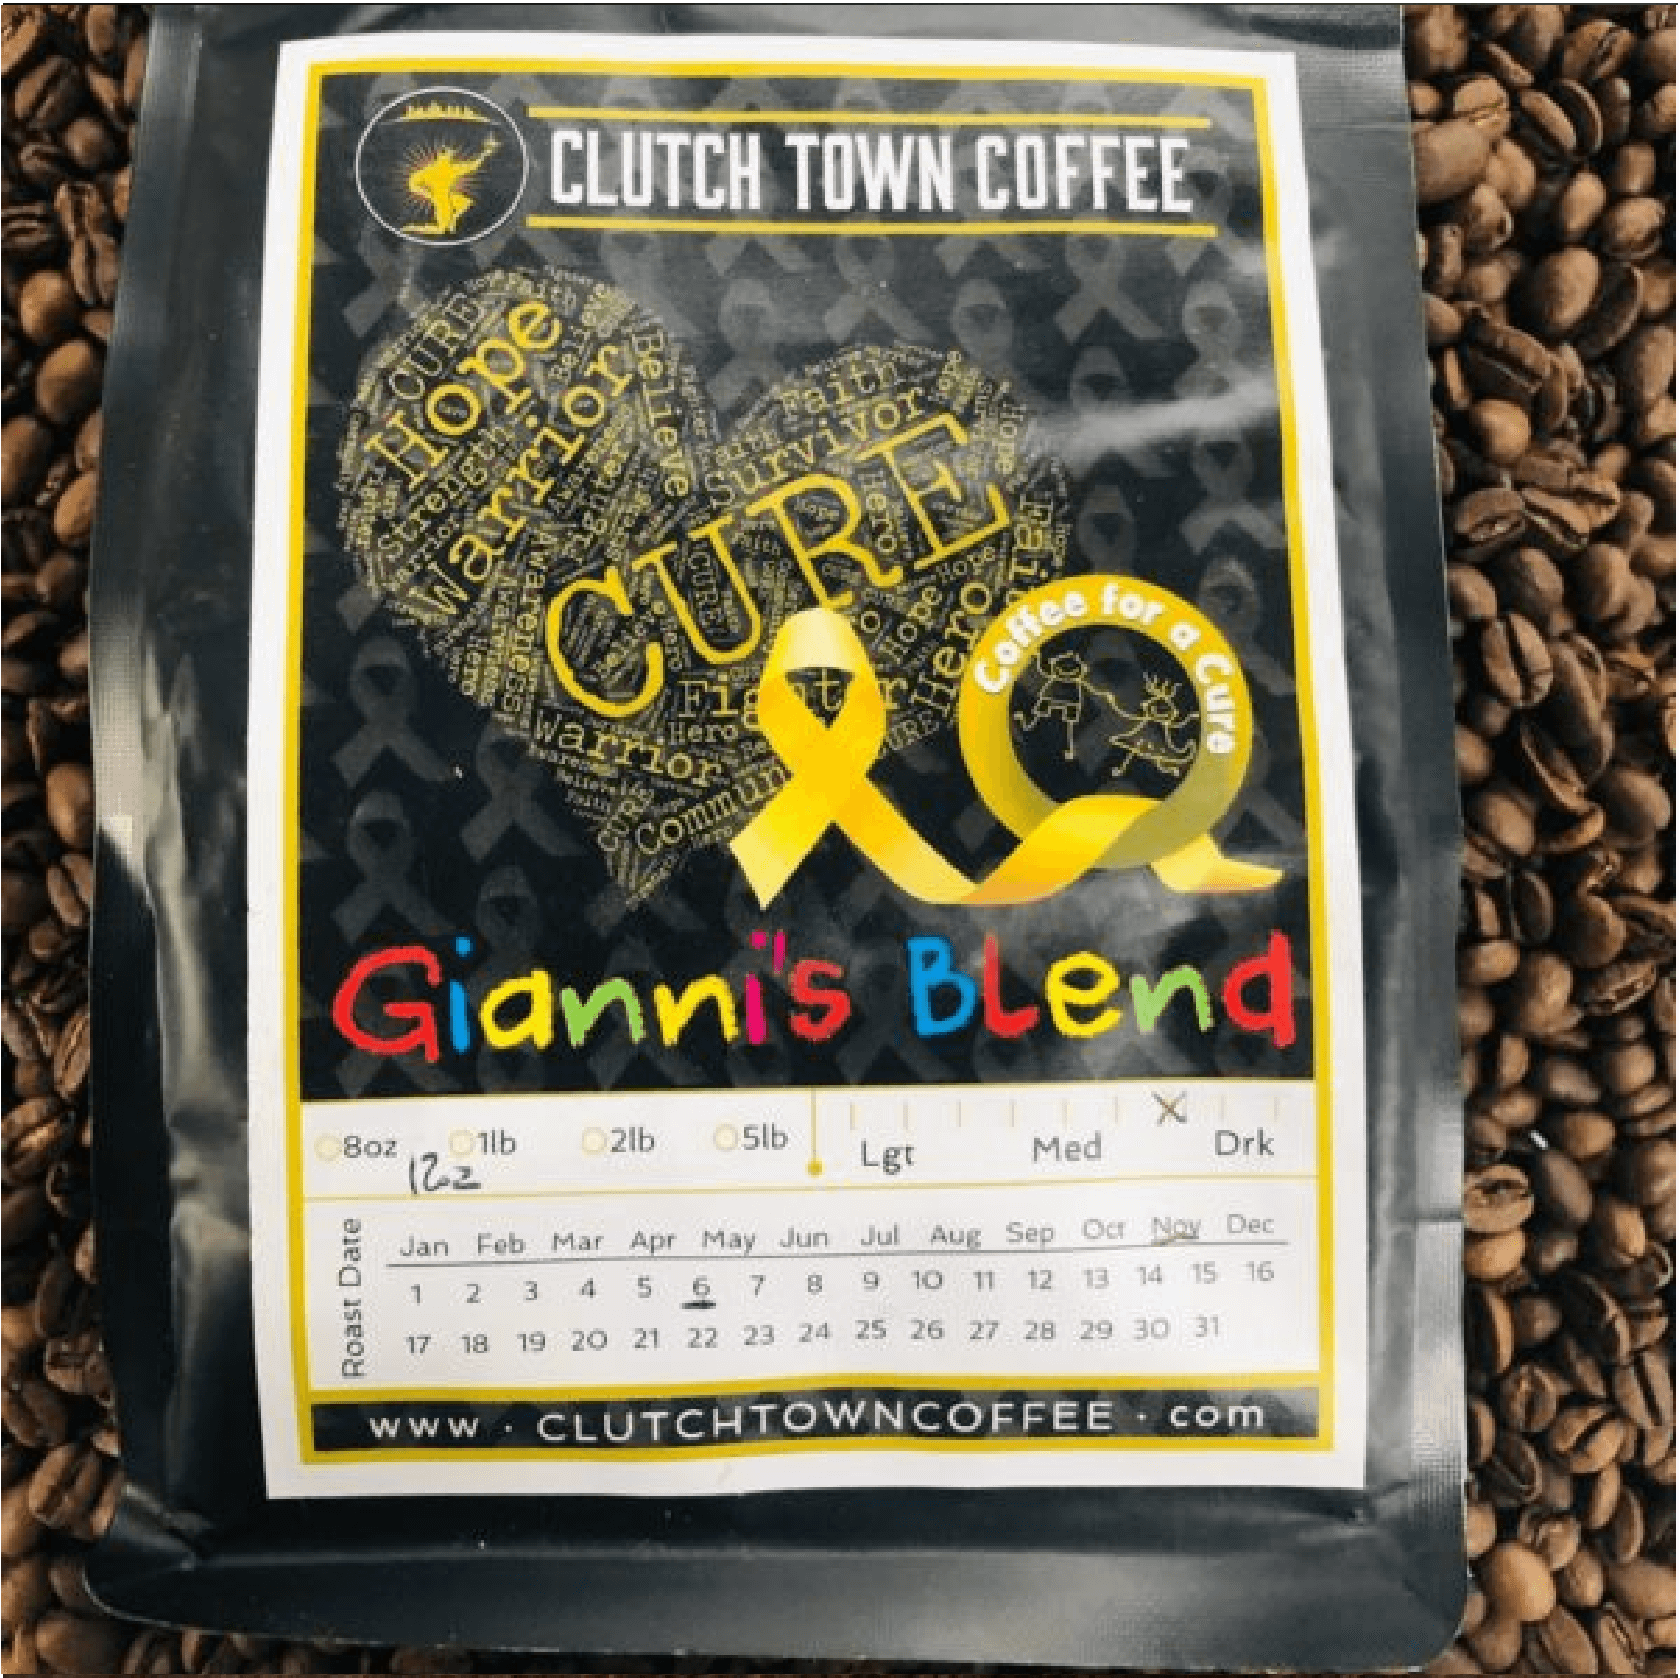 Gianni's from Clutch Town Coffee